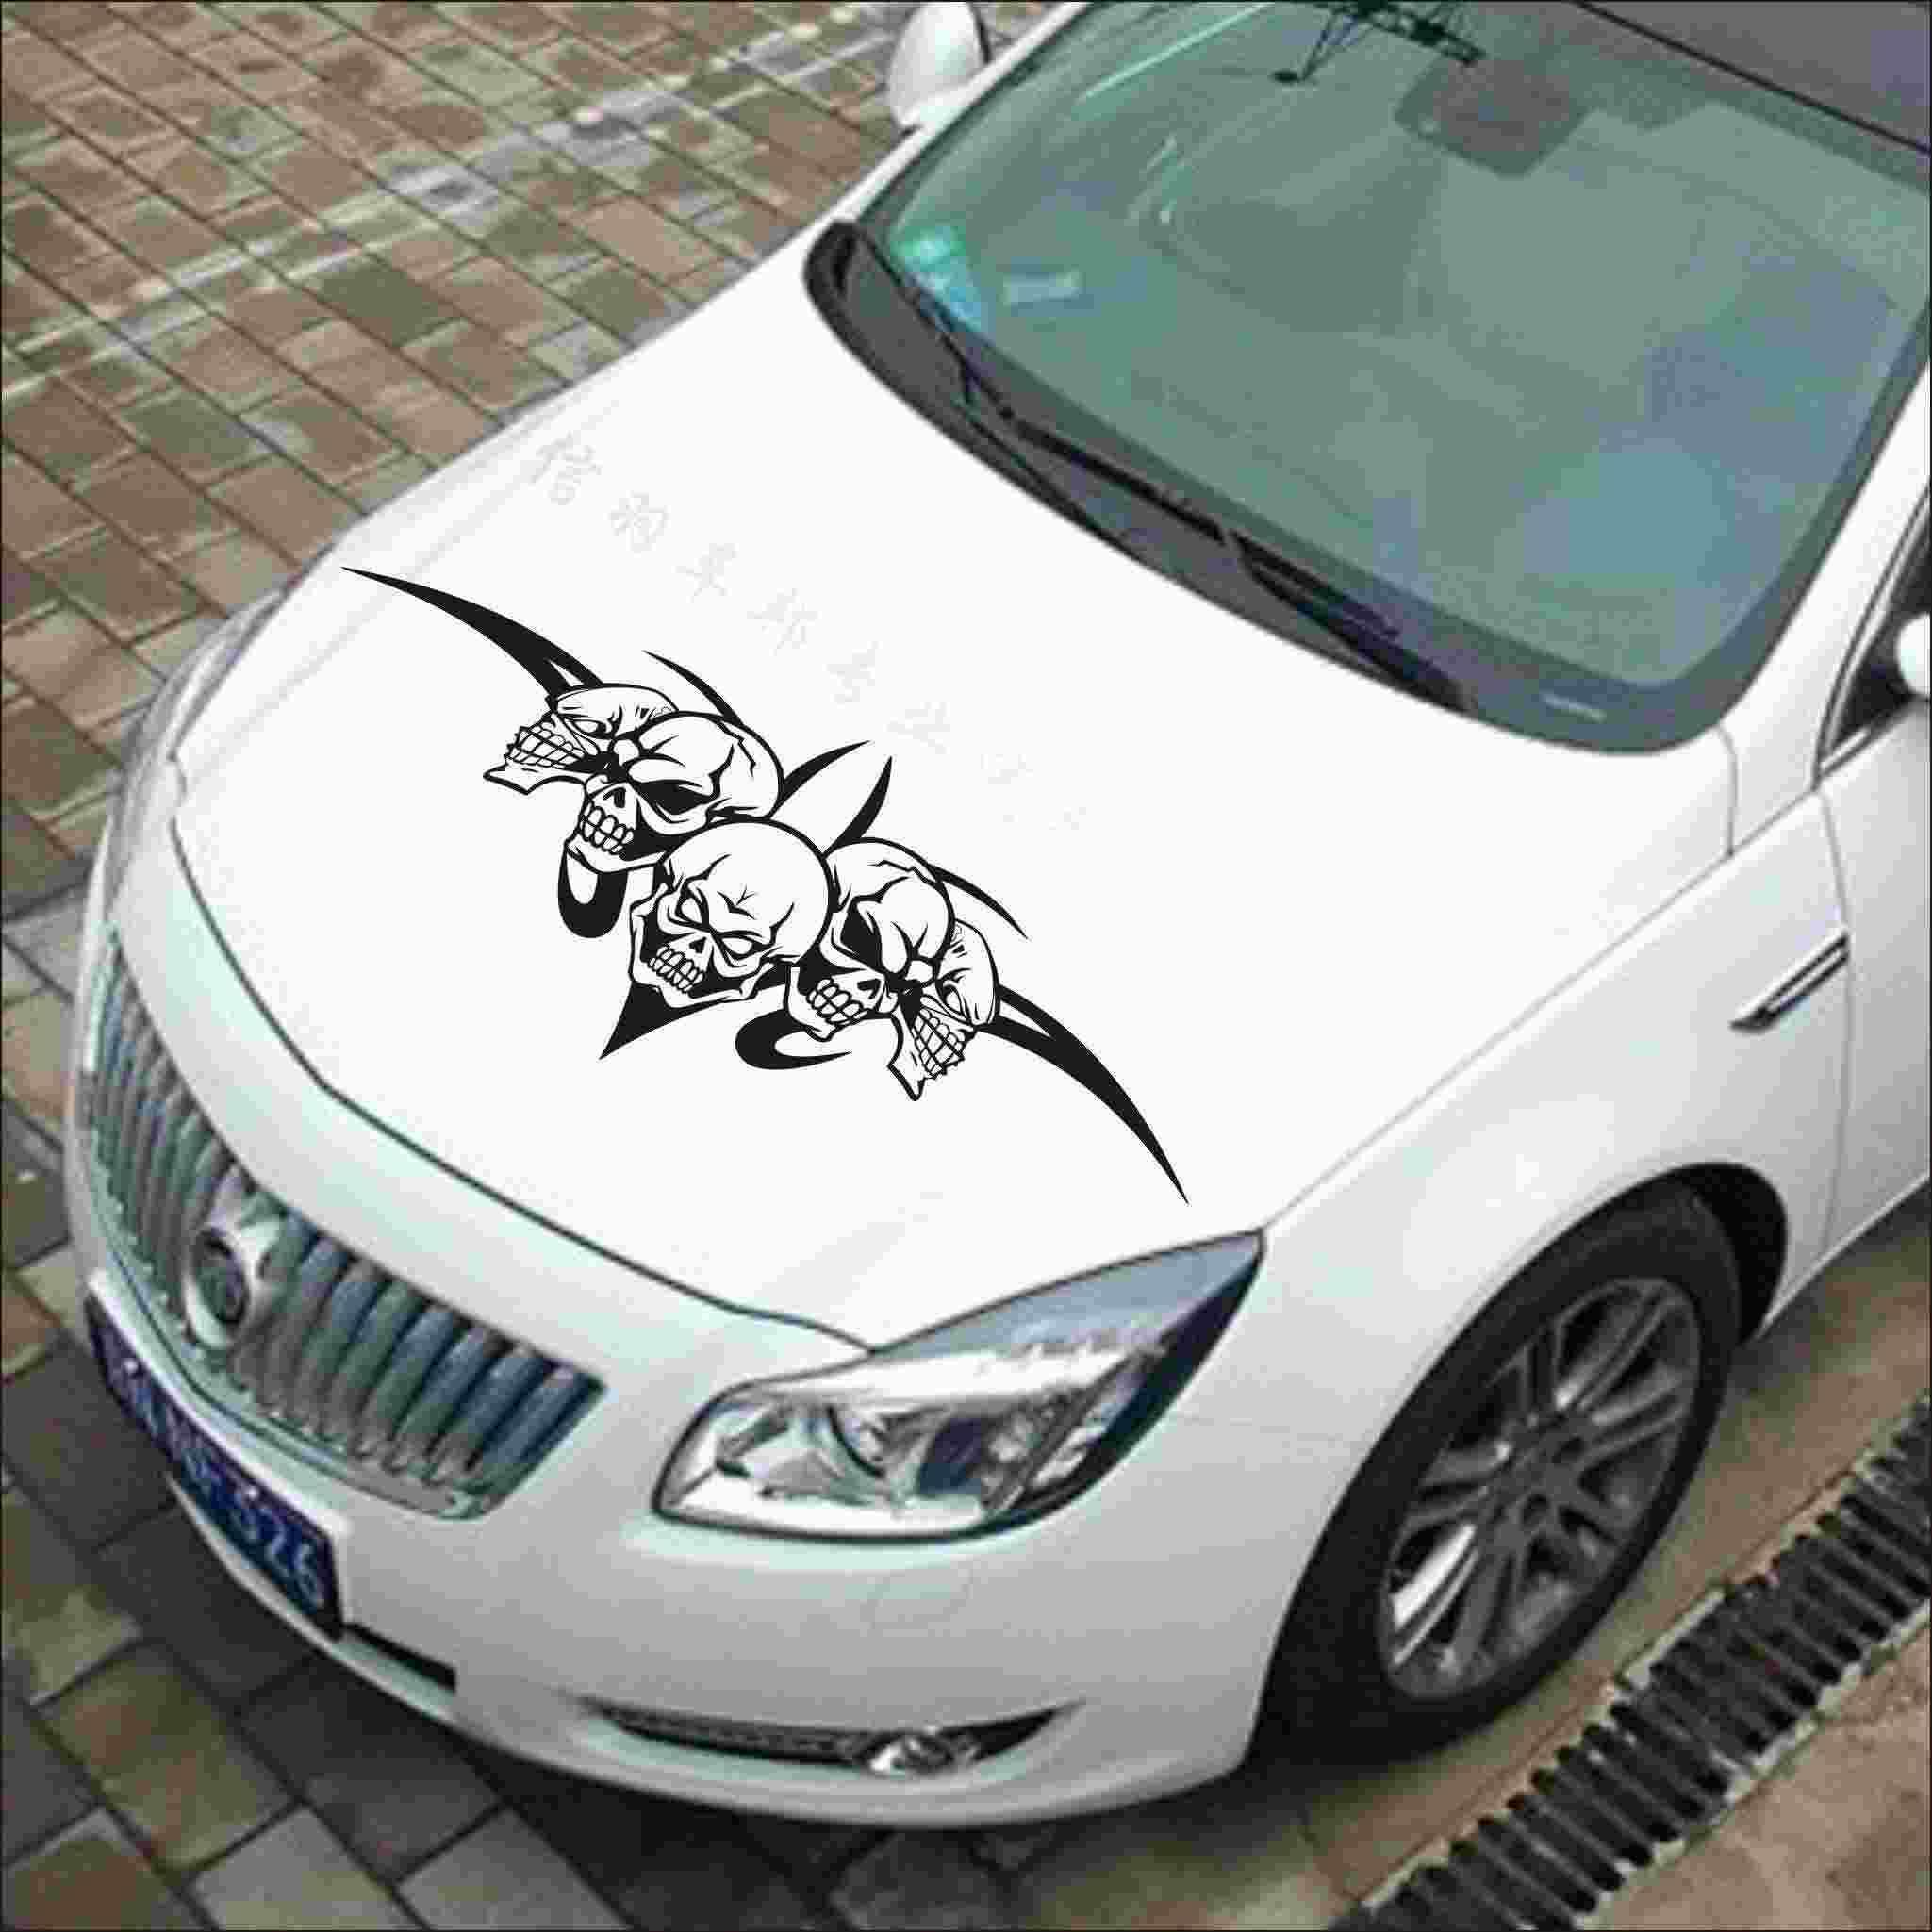 Skull bonnet sticker reflective stickers personalized car for Maruti 800 decoration